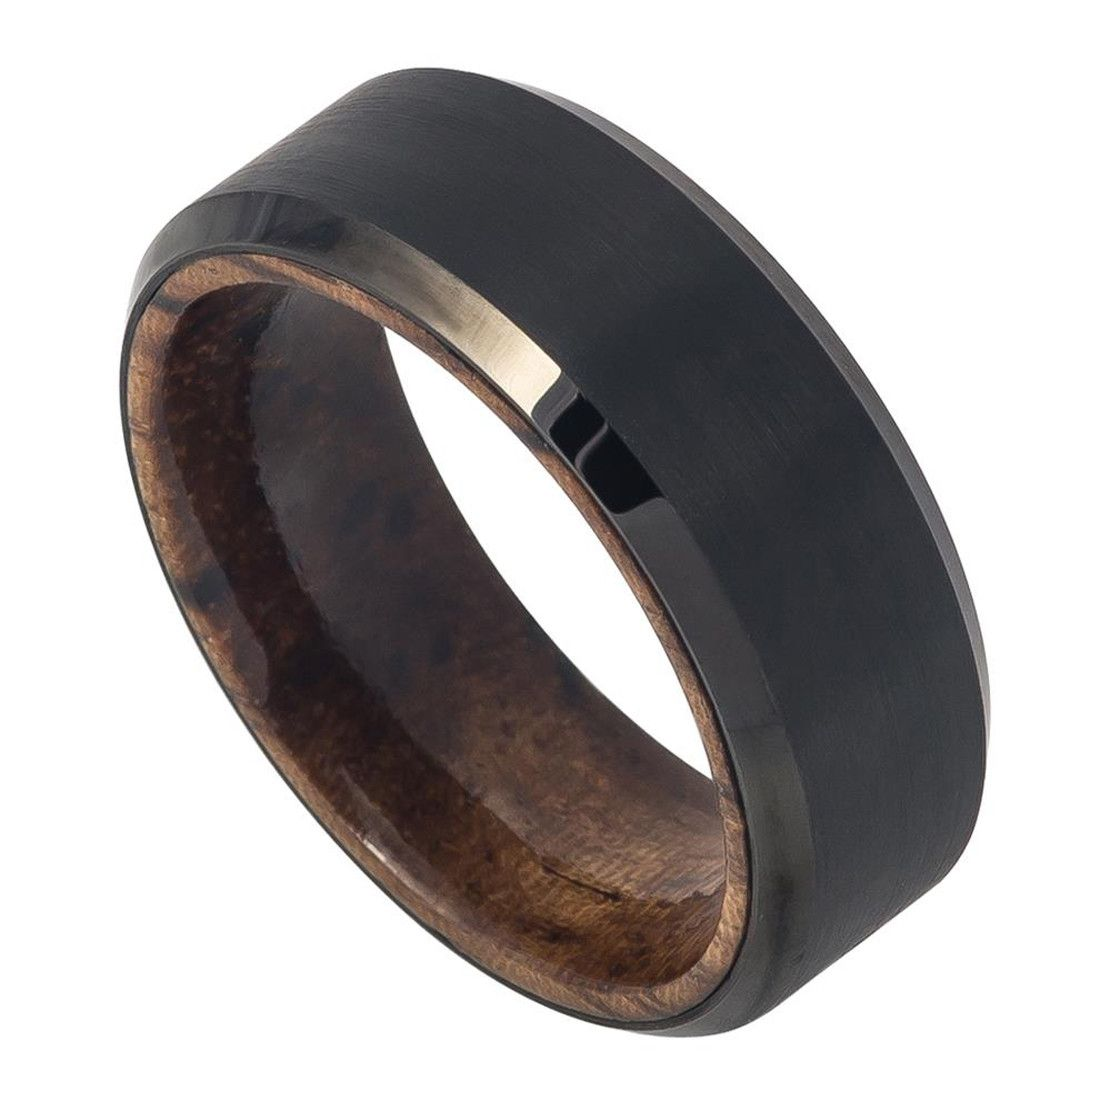 8mm Men Tungsten Wedding Band Ring Black Ip Plated Brushed Finish Beveled Edge With African Sapele Mahogany Wood Sleeve Inner